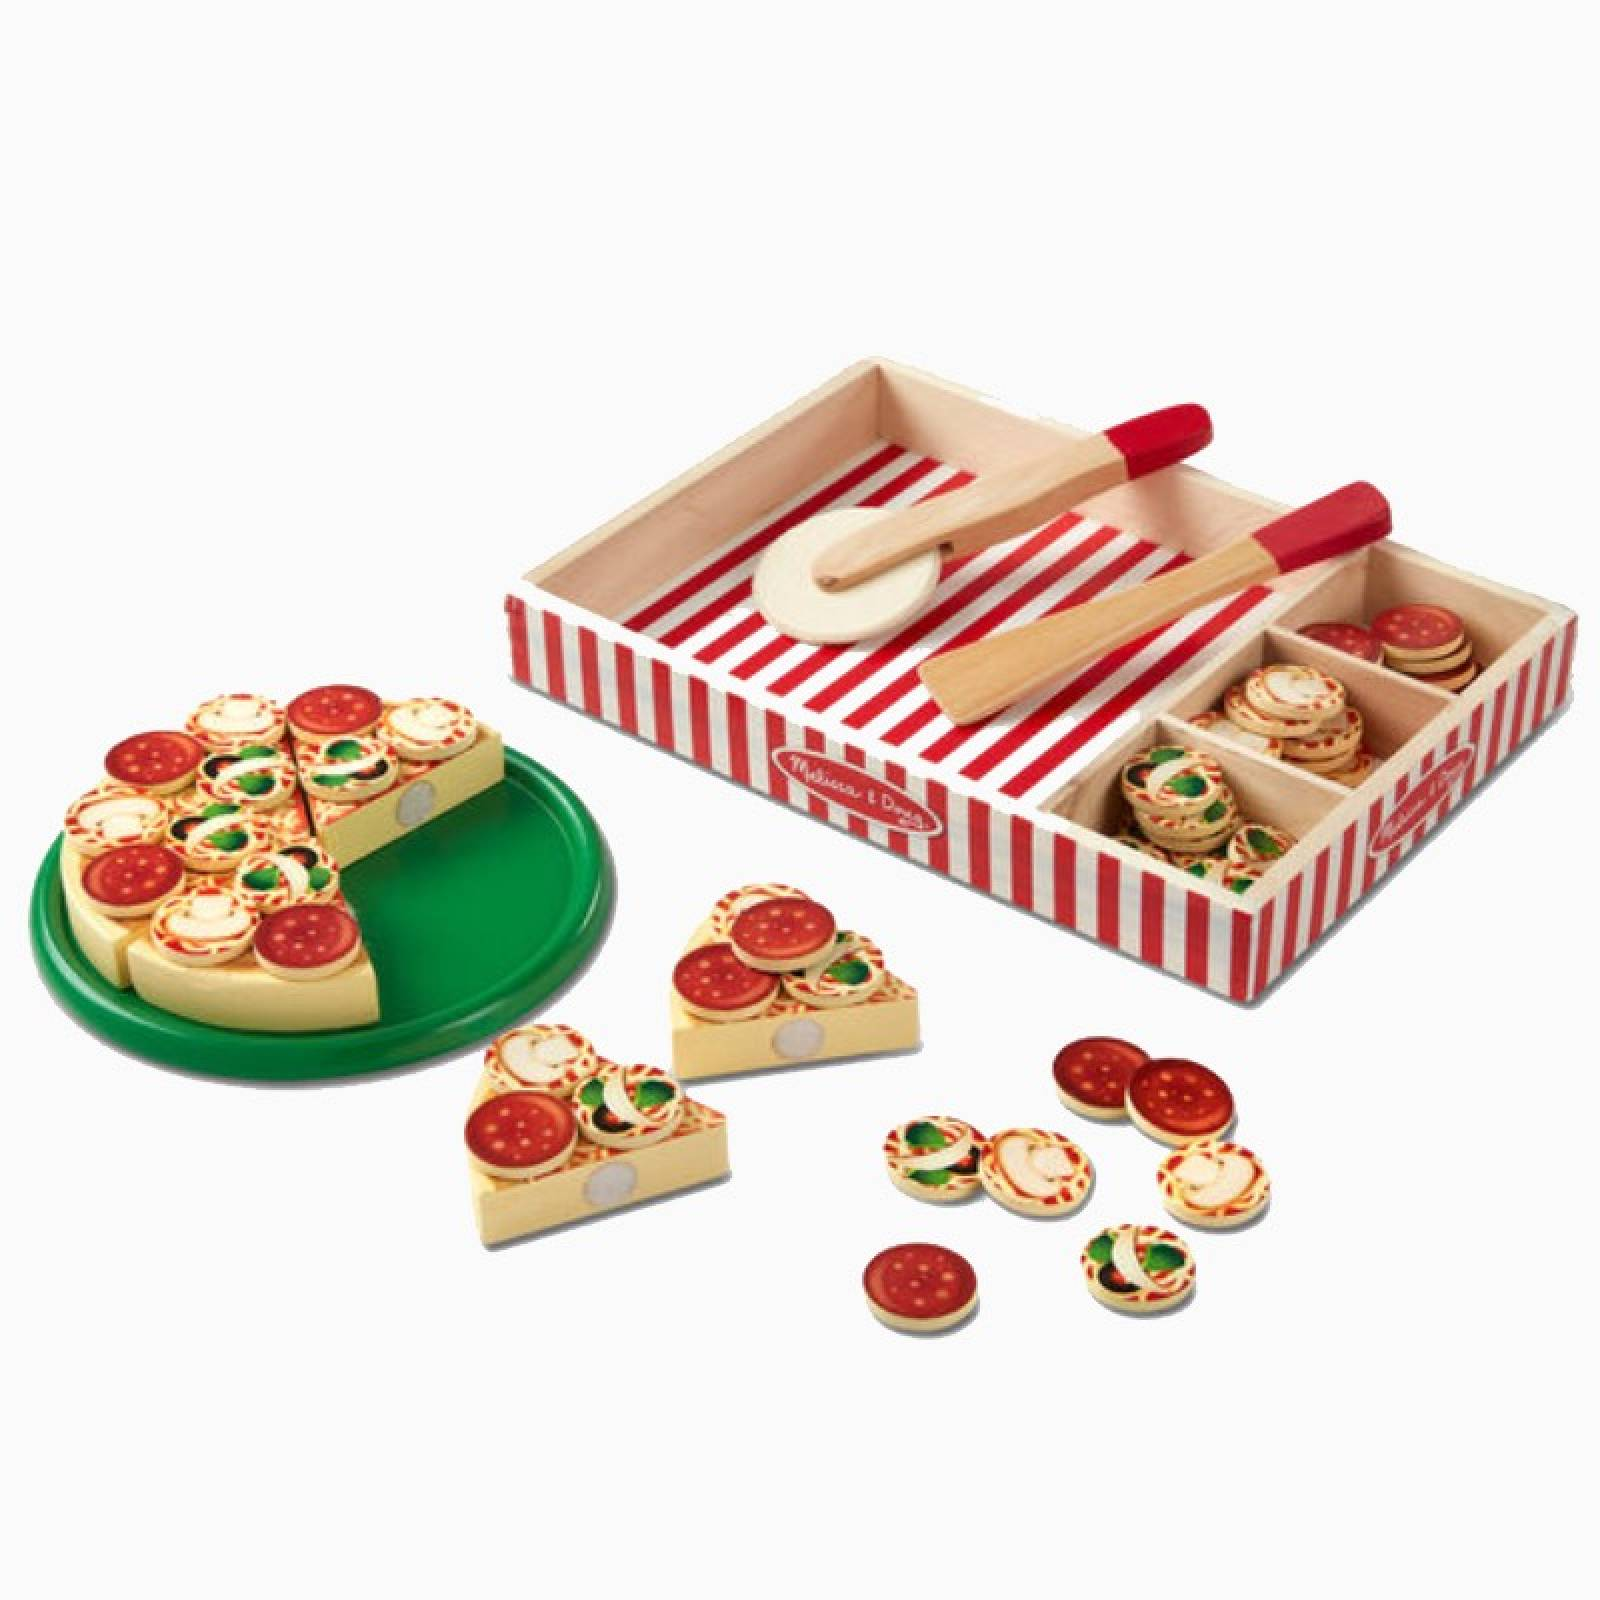 Pizza Party Wooden Play Food Set 2+